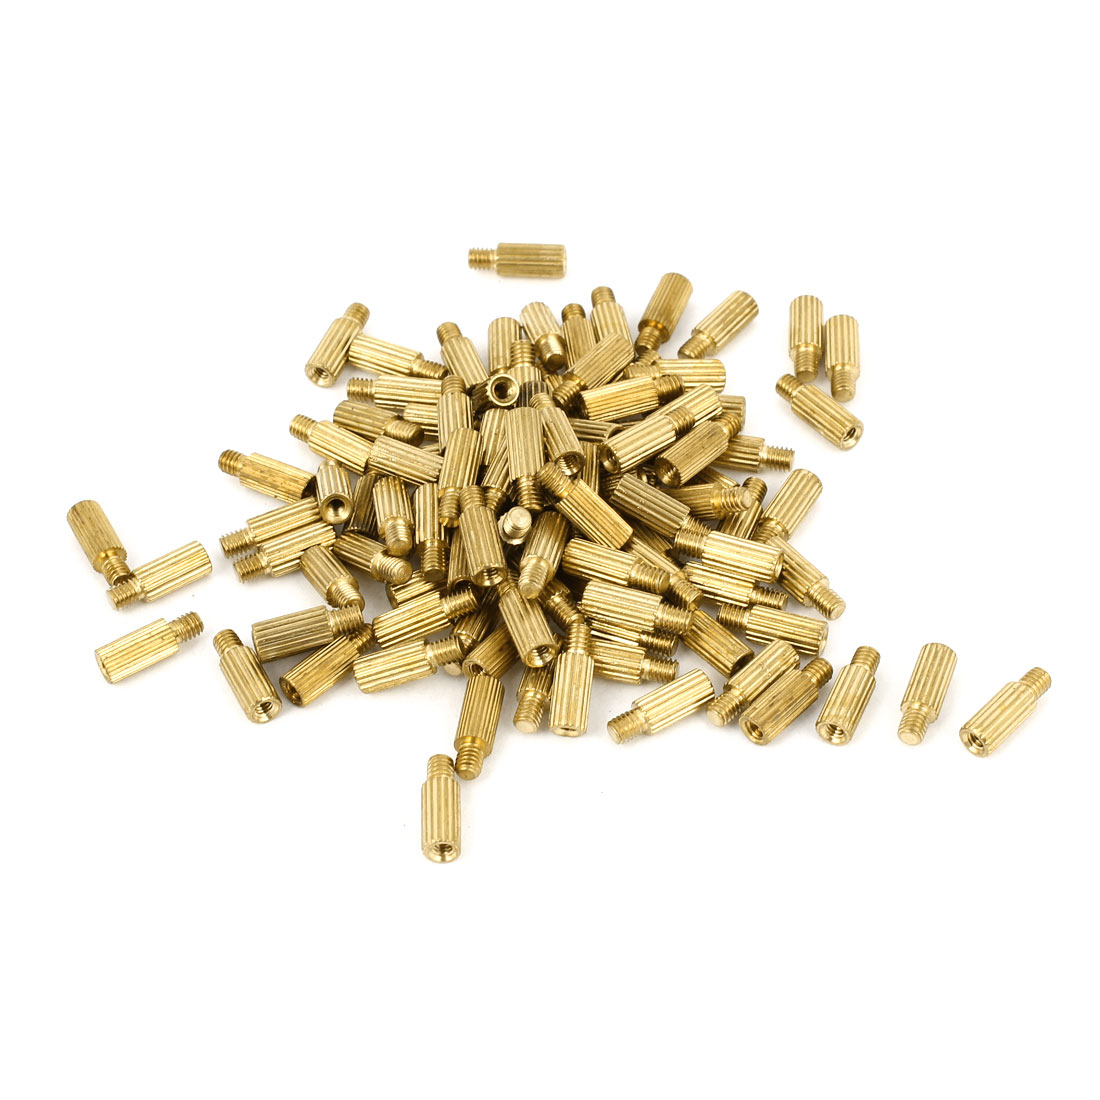 100Pcs Male to Female Thread Grooved Brass Pillars Standoff M2x7mm